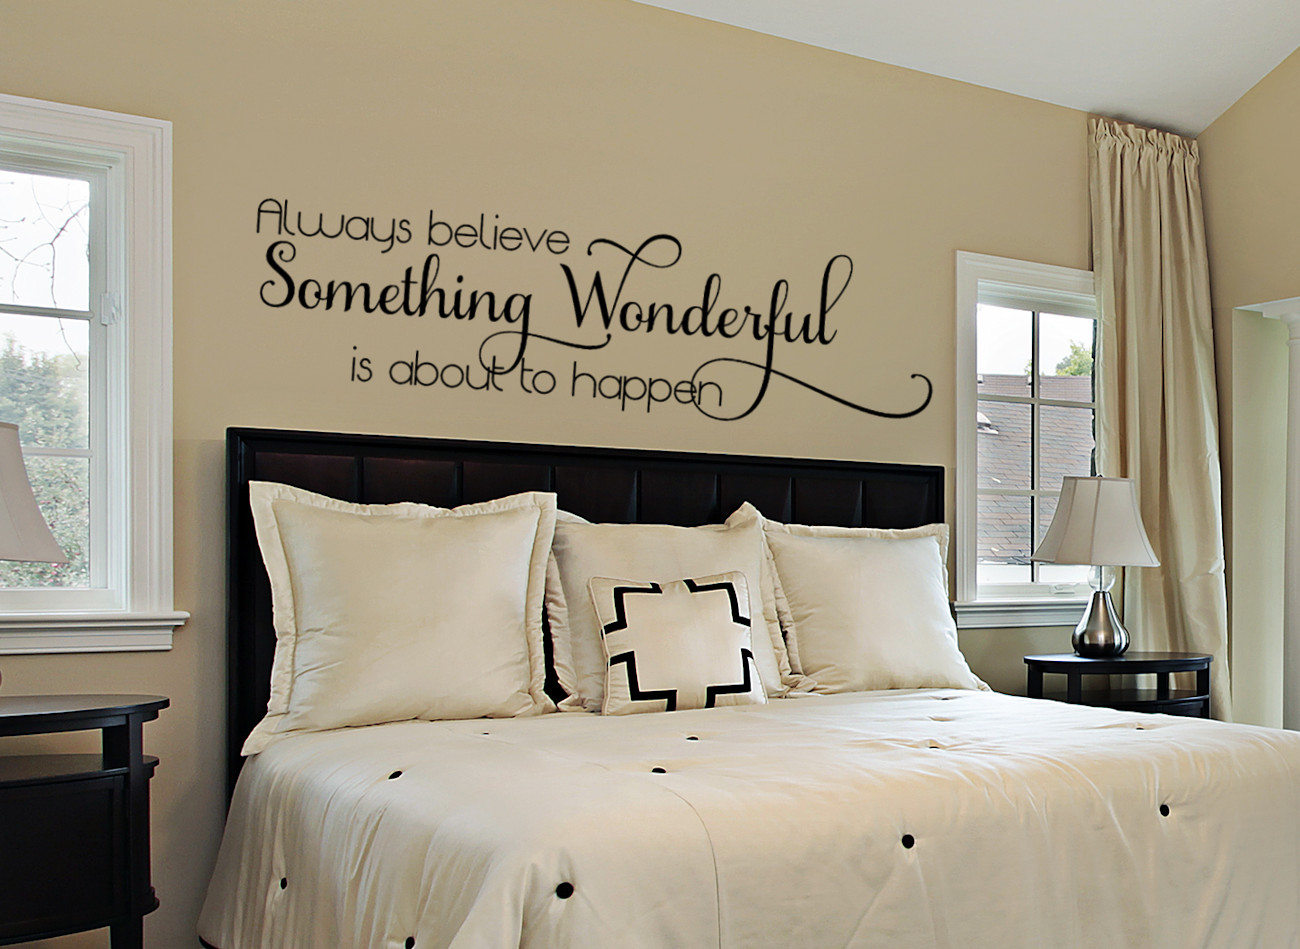 Best ideas about Wall Decals For Bedroom . Save or Pin Inspirational Wall Decal Bedroom Wall Decal Bedroom Now.